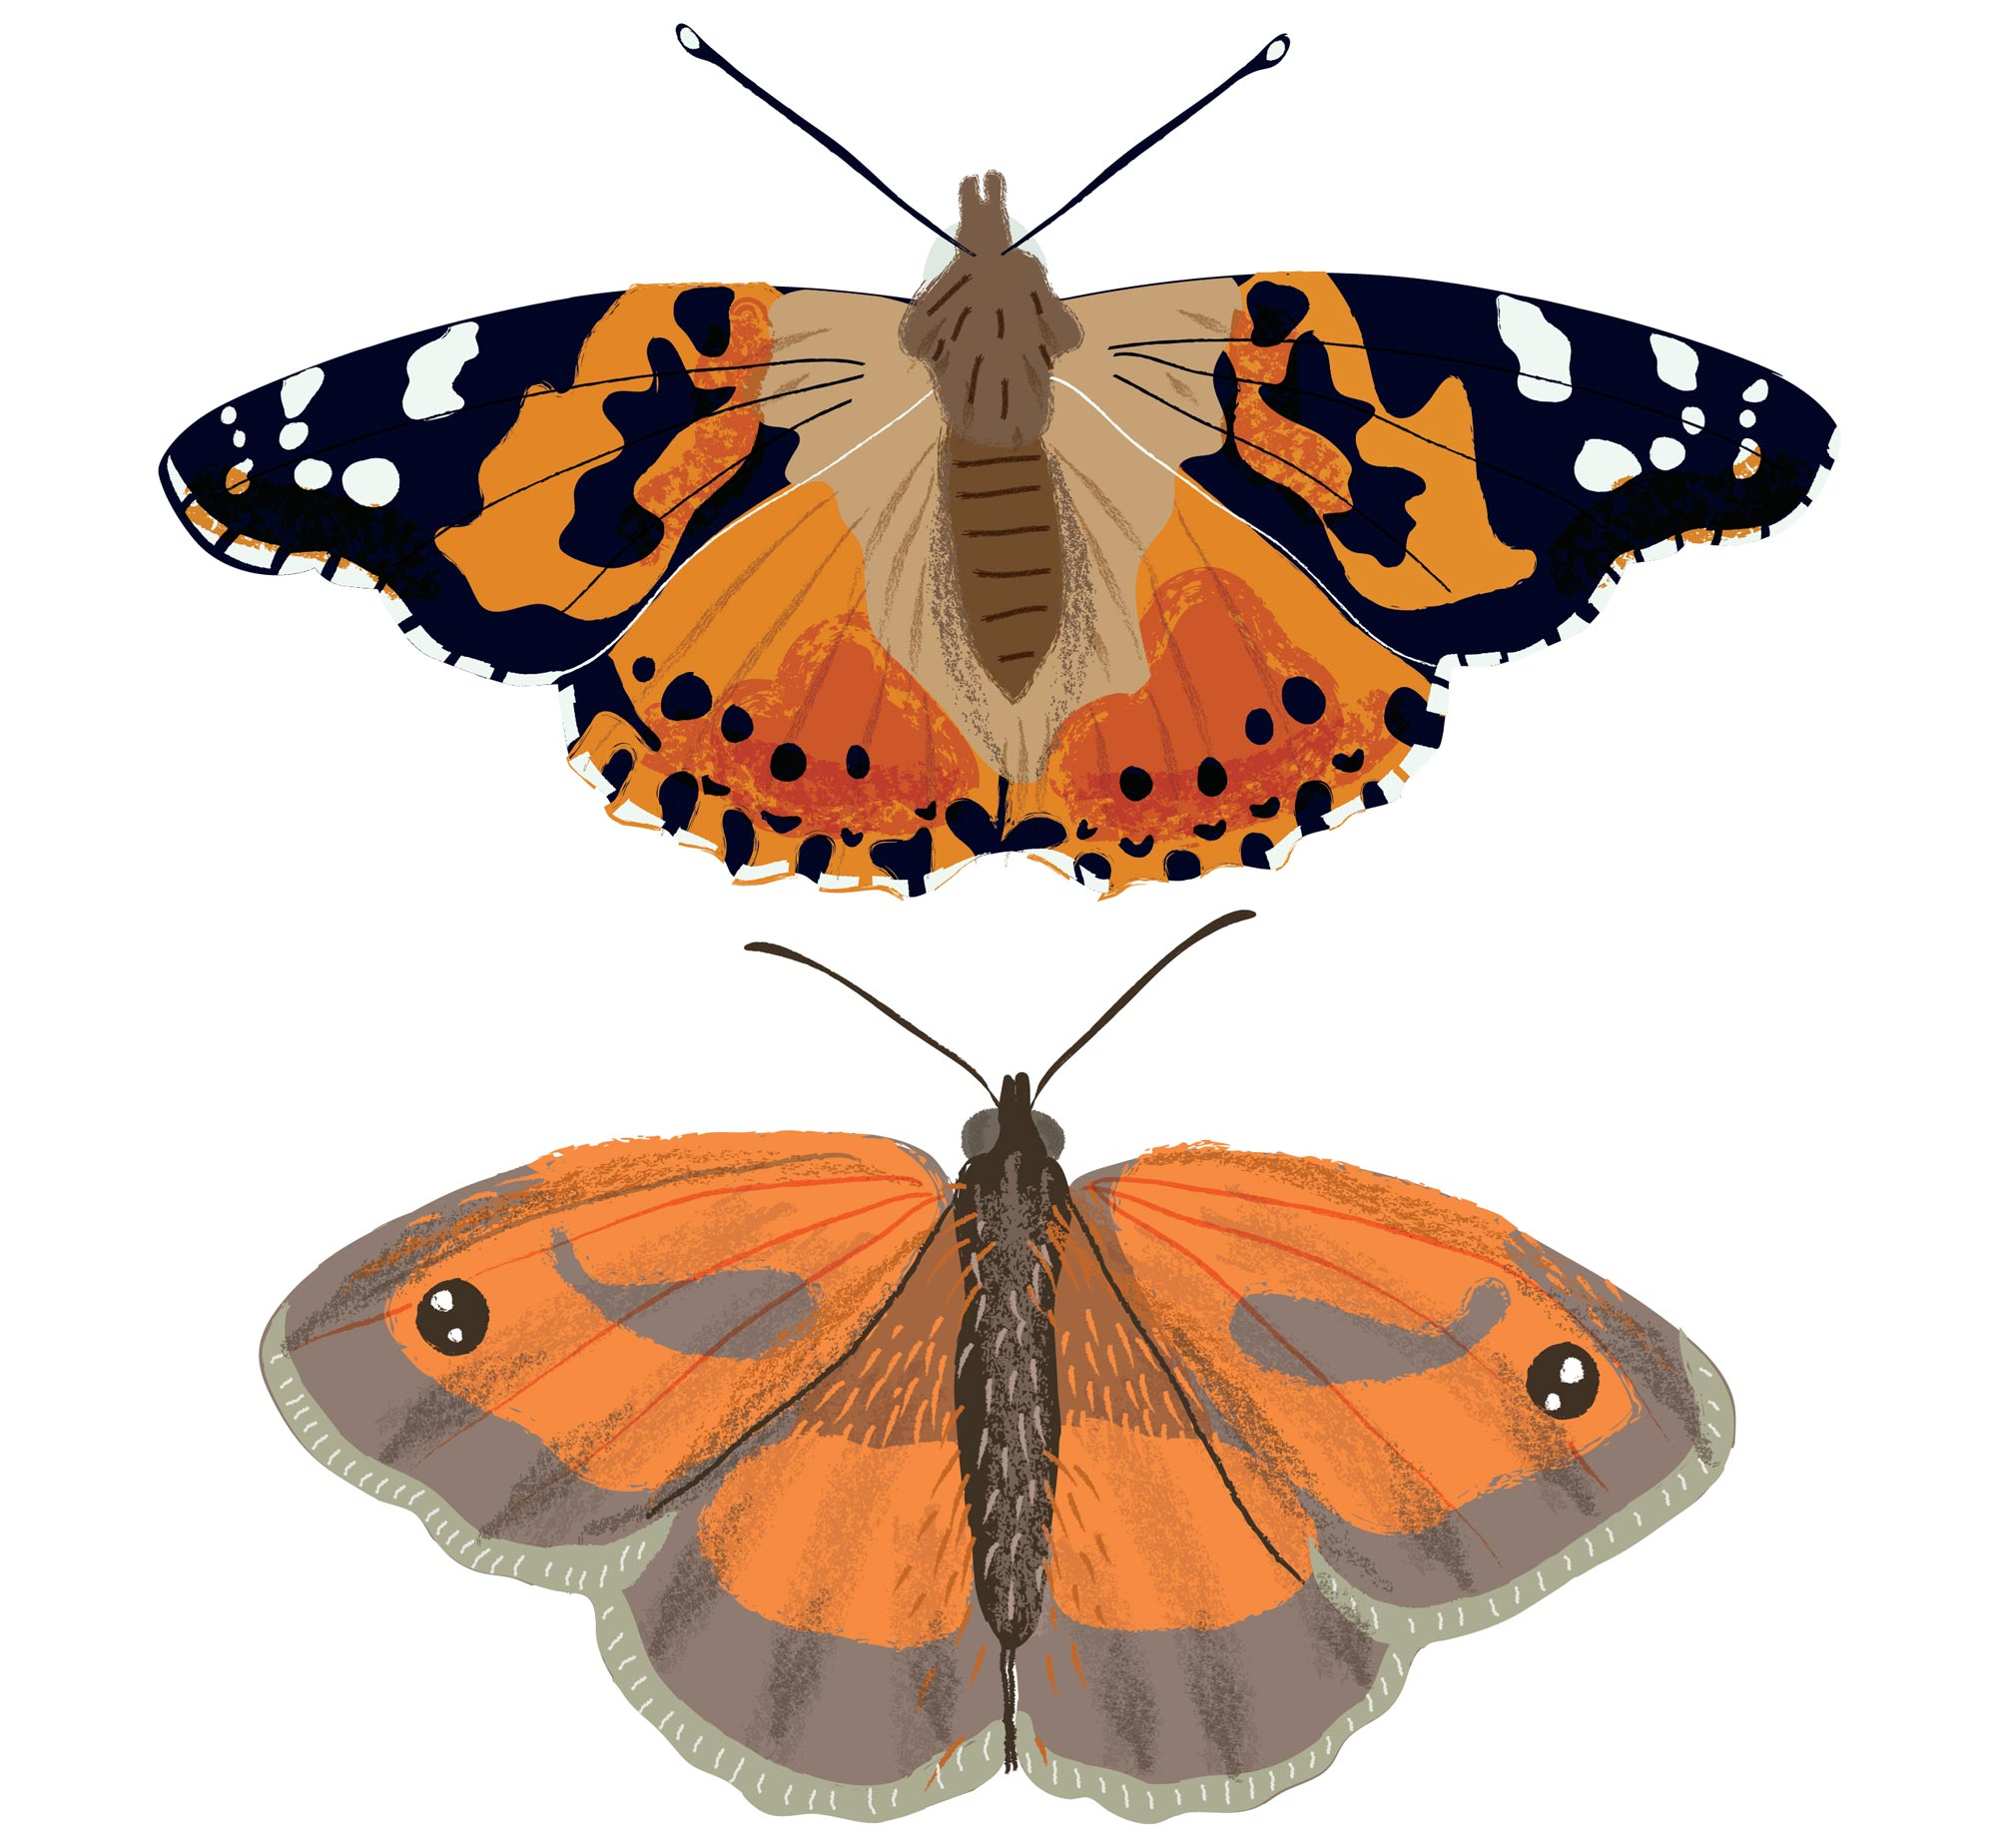 Some butterflies for Nature Month by Month by Elly Jahnz